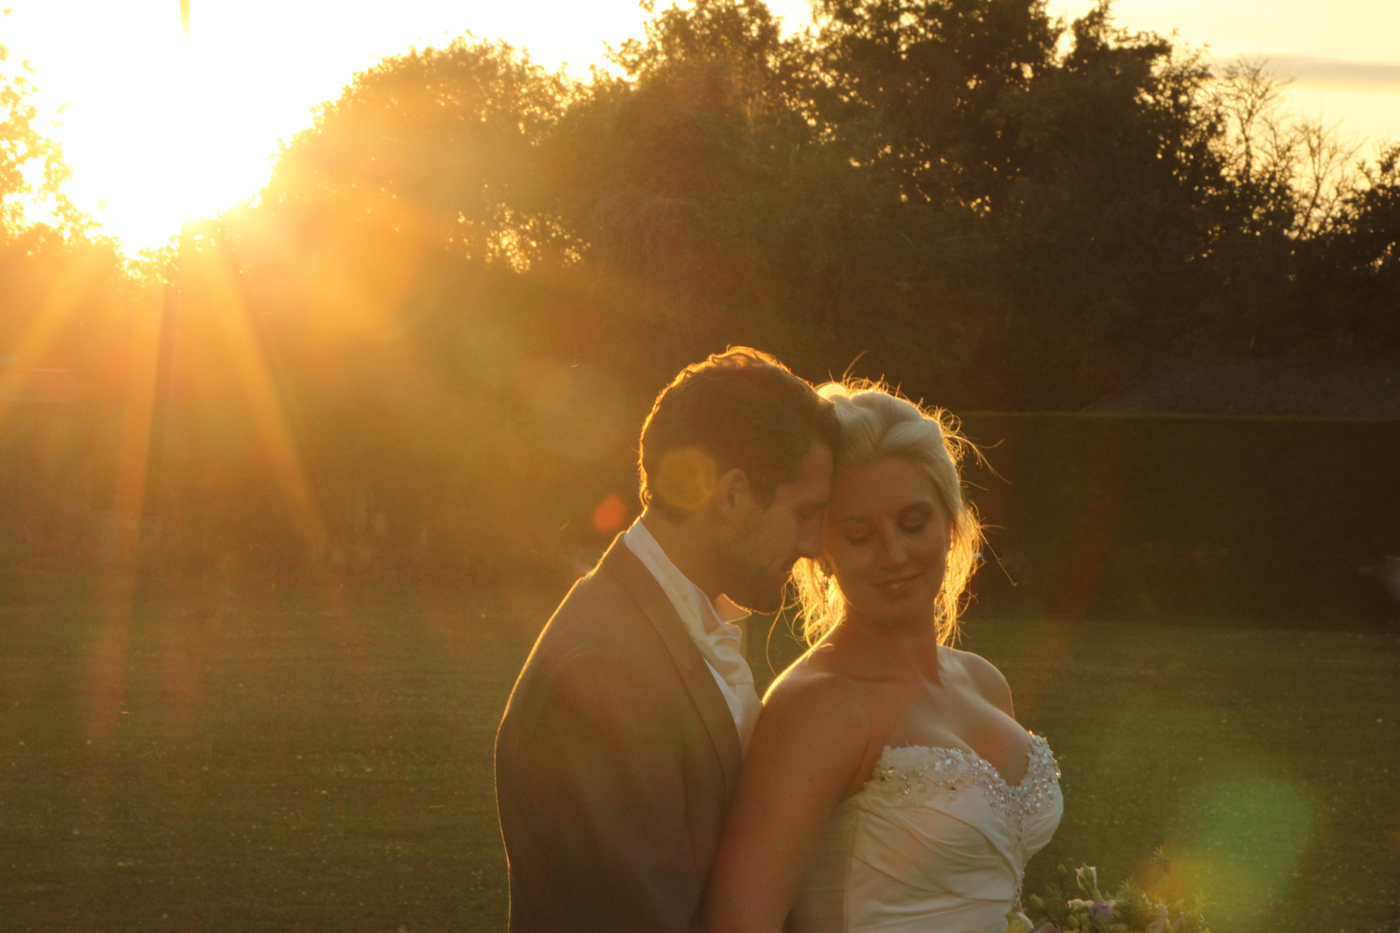 WEDDING SUNSET by Don Dobson